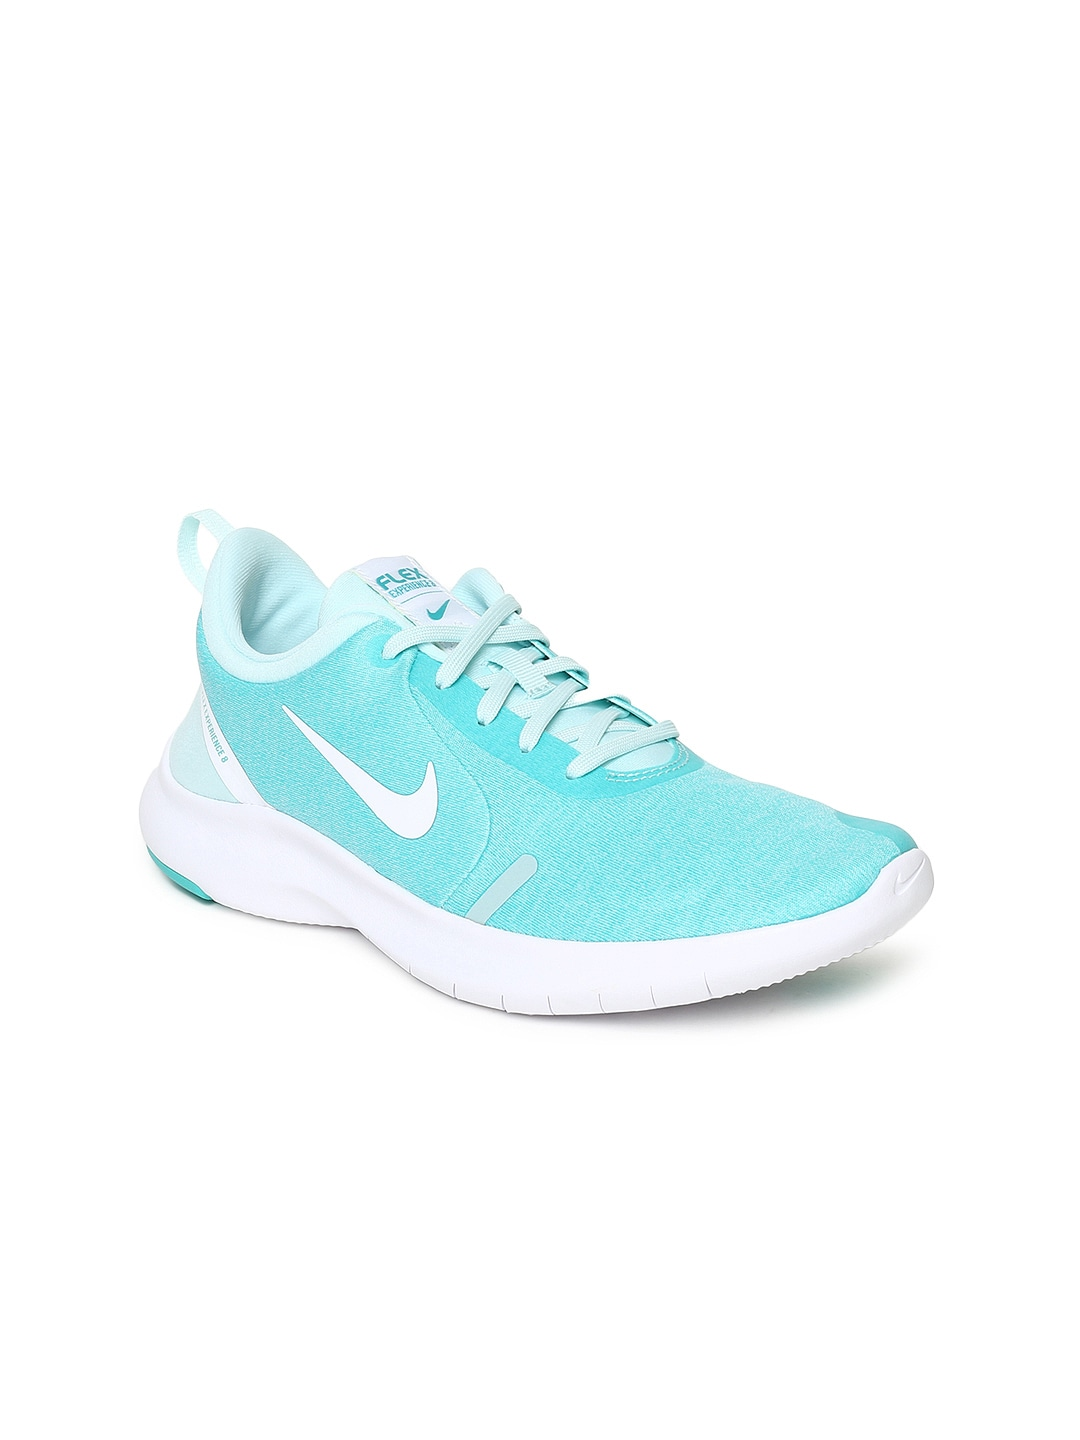 58aa37bba Women s Nike Shoes - Buy Nike Shoes for Women Online in India